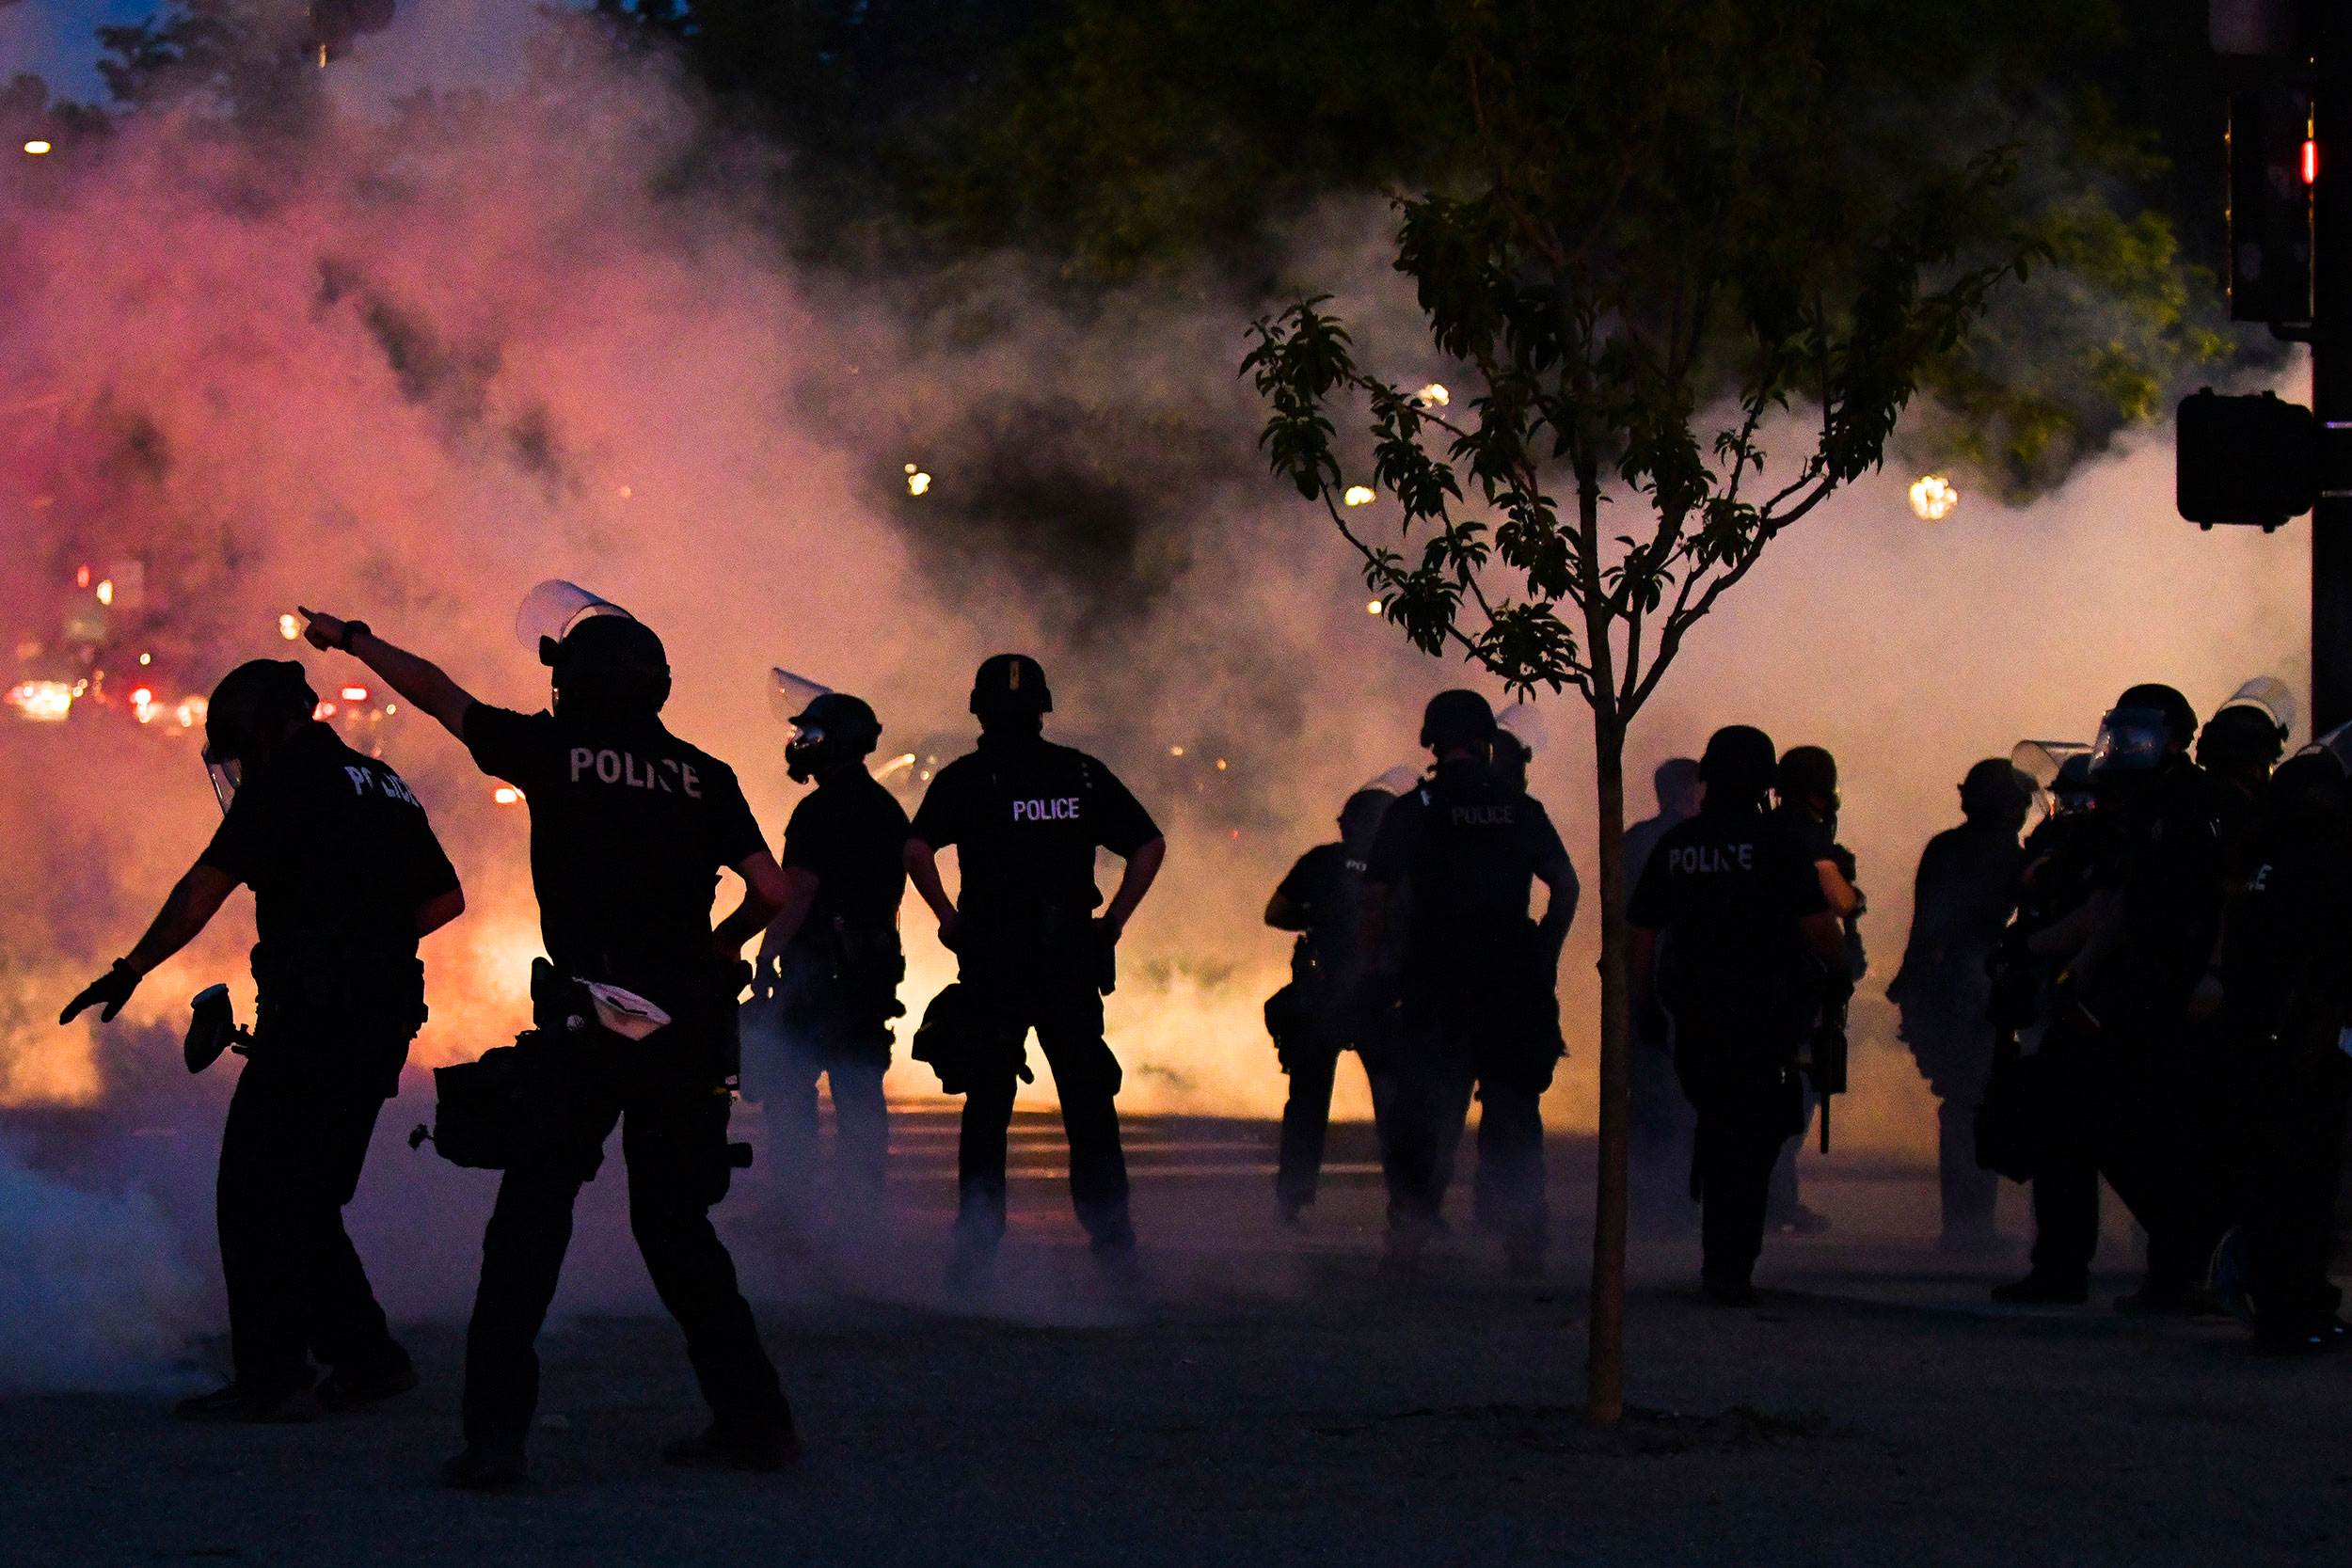 Police officers fire tear gas during a protest on Friday night in Denver, Colorado.